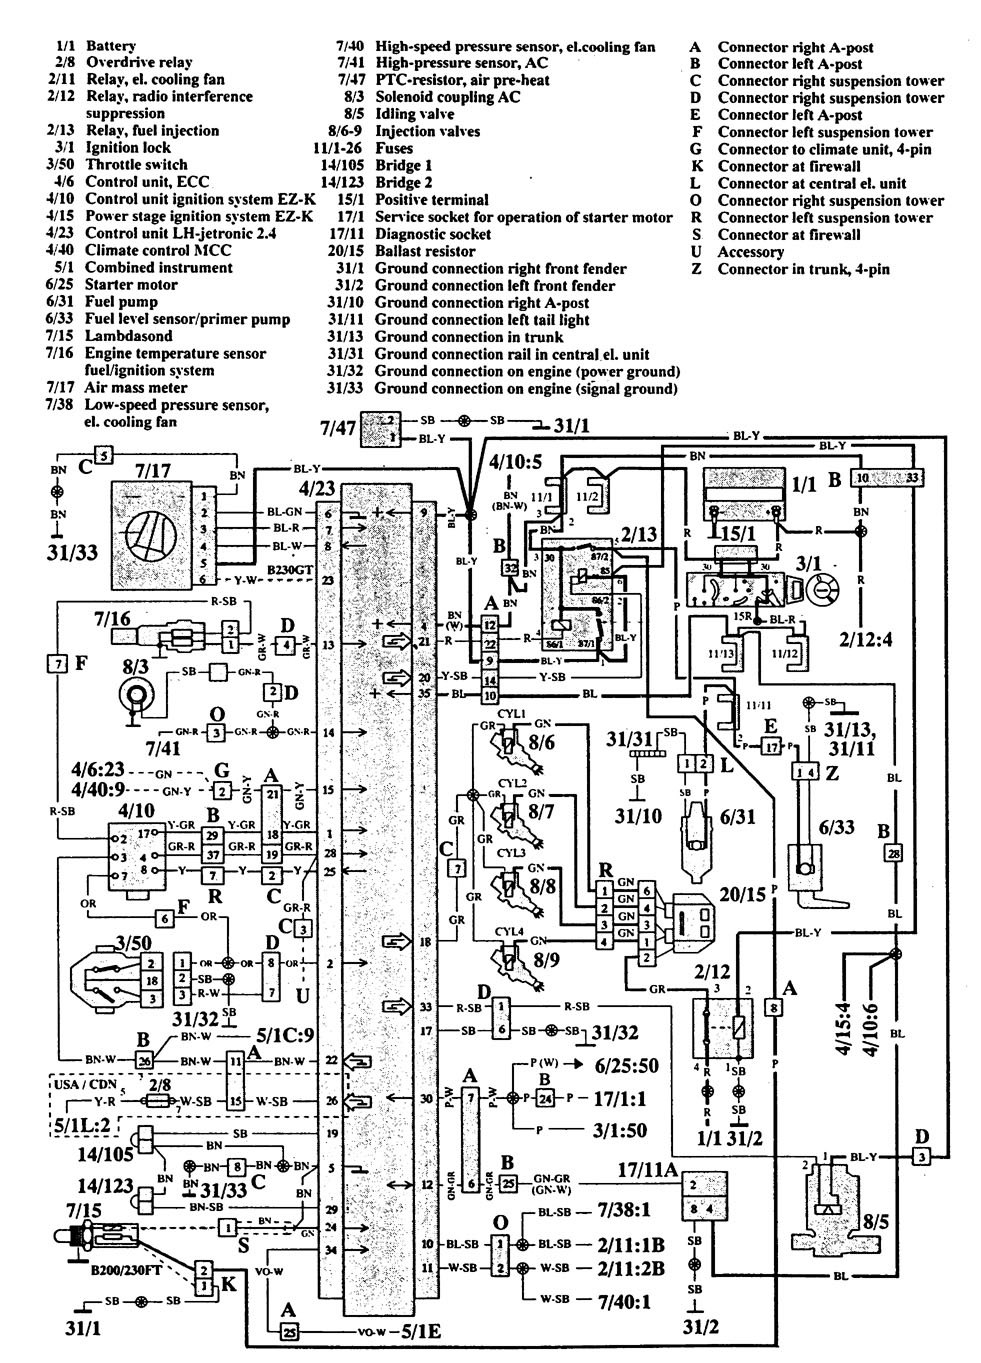 1993 volvo 940 radio wiring diagram wiring diagram volvo 240 wagon celect plus wiring diagram volvo